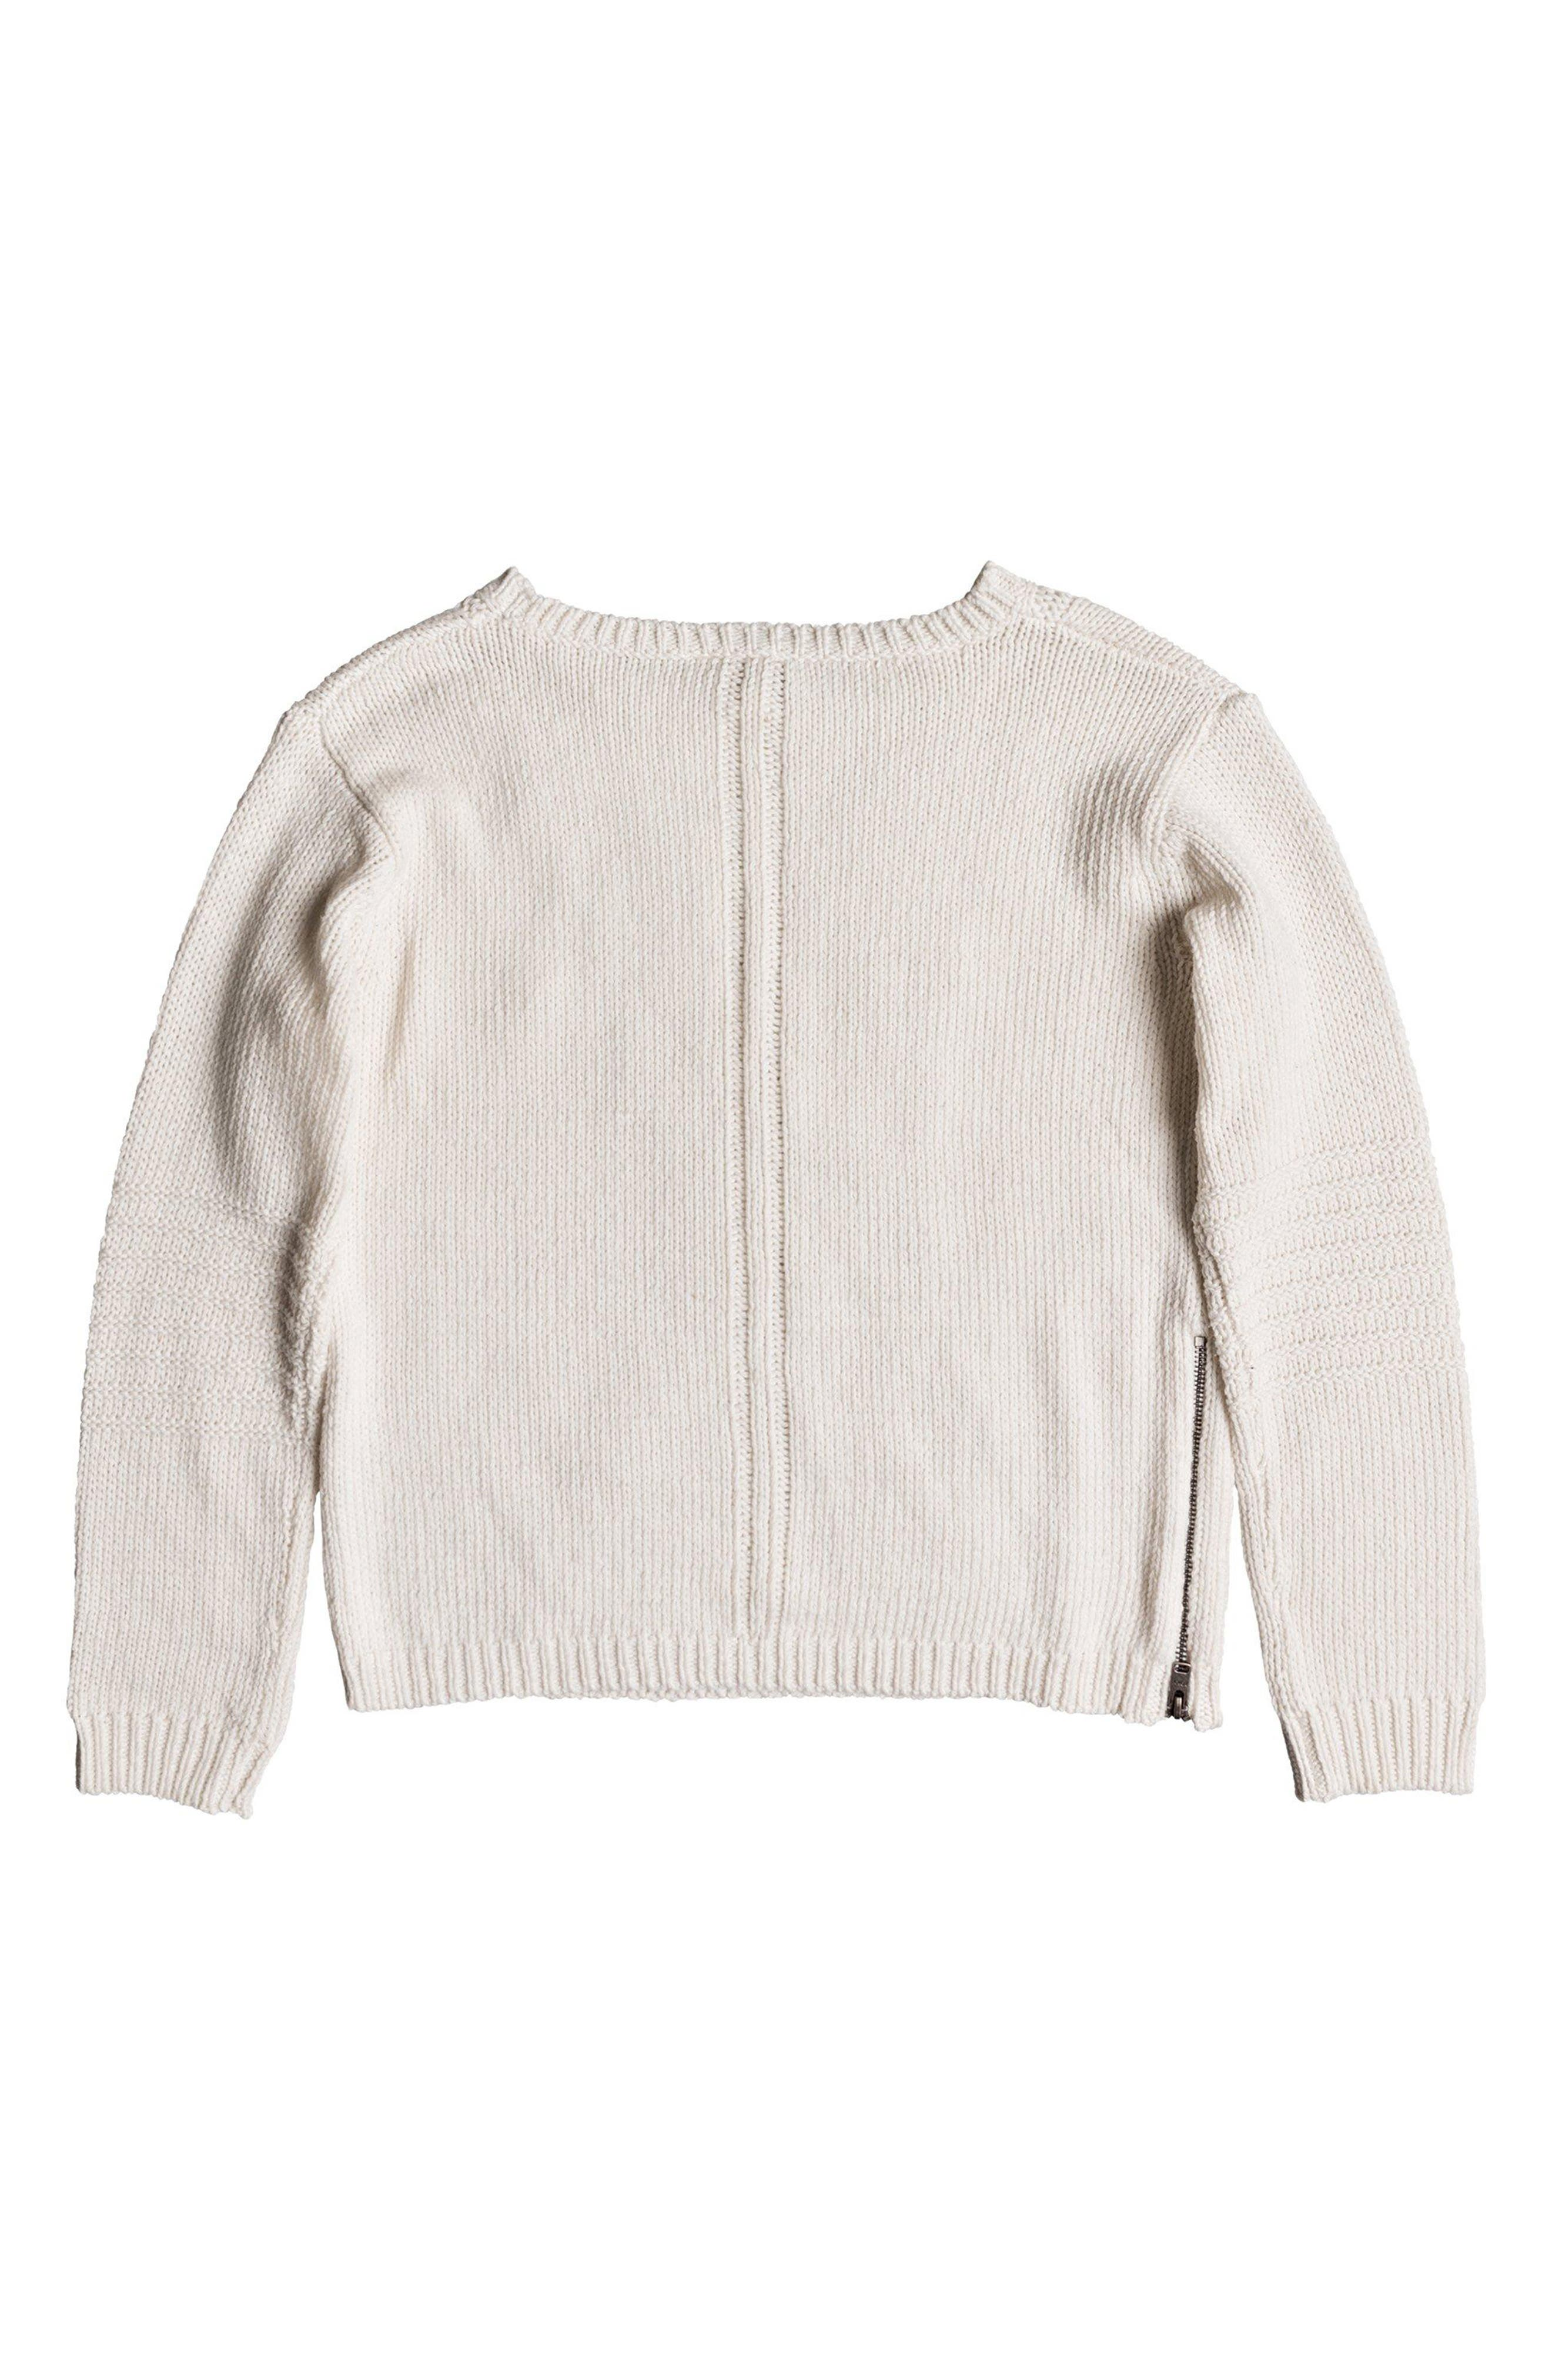 Glimpse of Romance Cable Knit Sweater,                             Alternate thumbnail 5, color,                             MARSHMALLOW